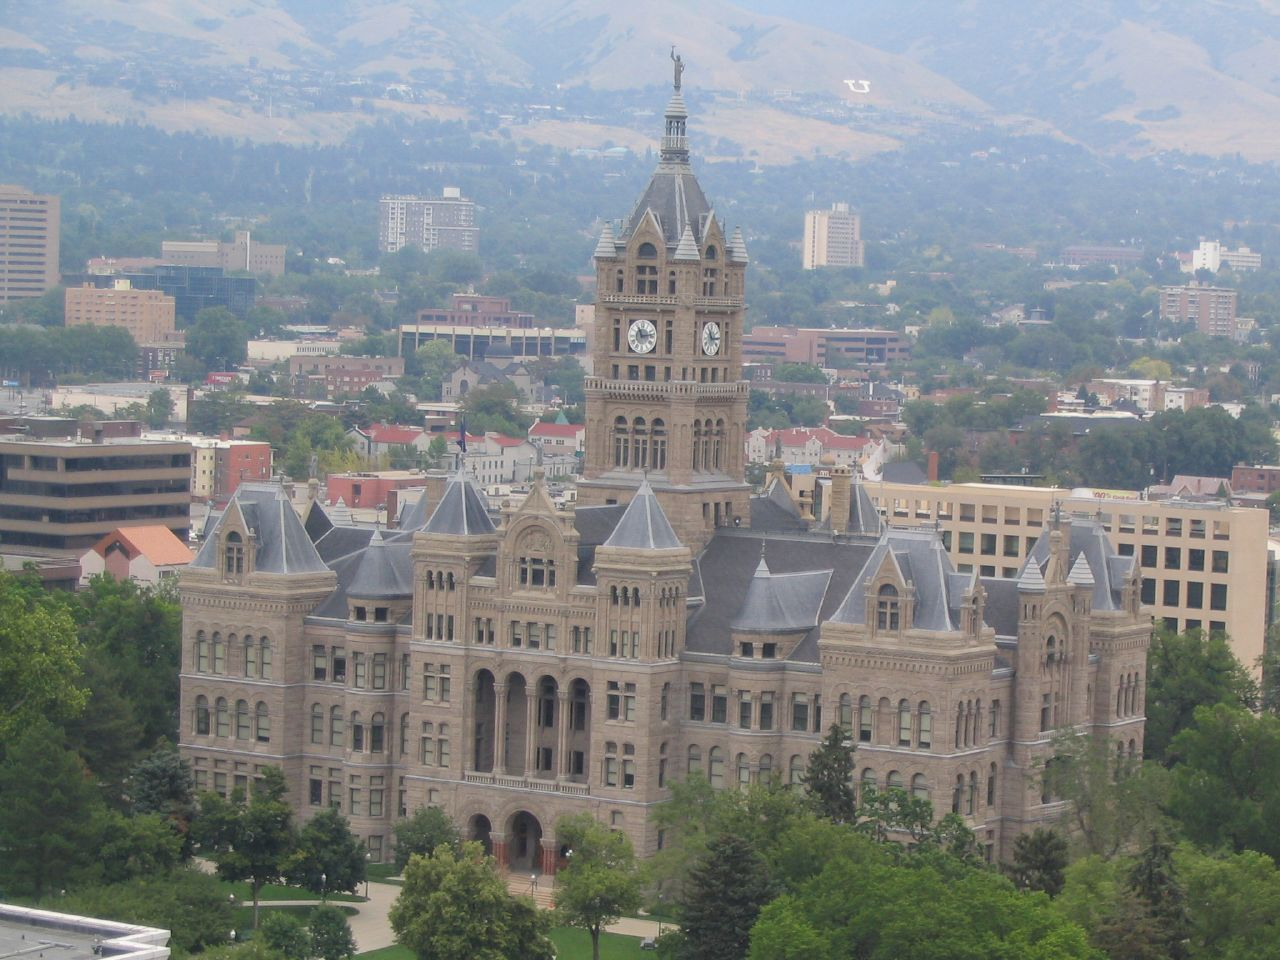 Salt Lake City and County Building (Courtesy Wkimiedia Commons)